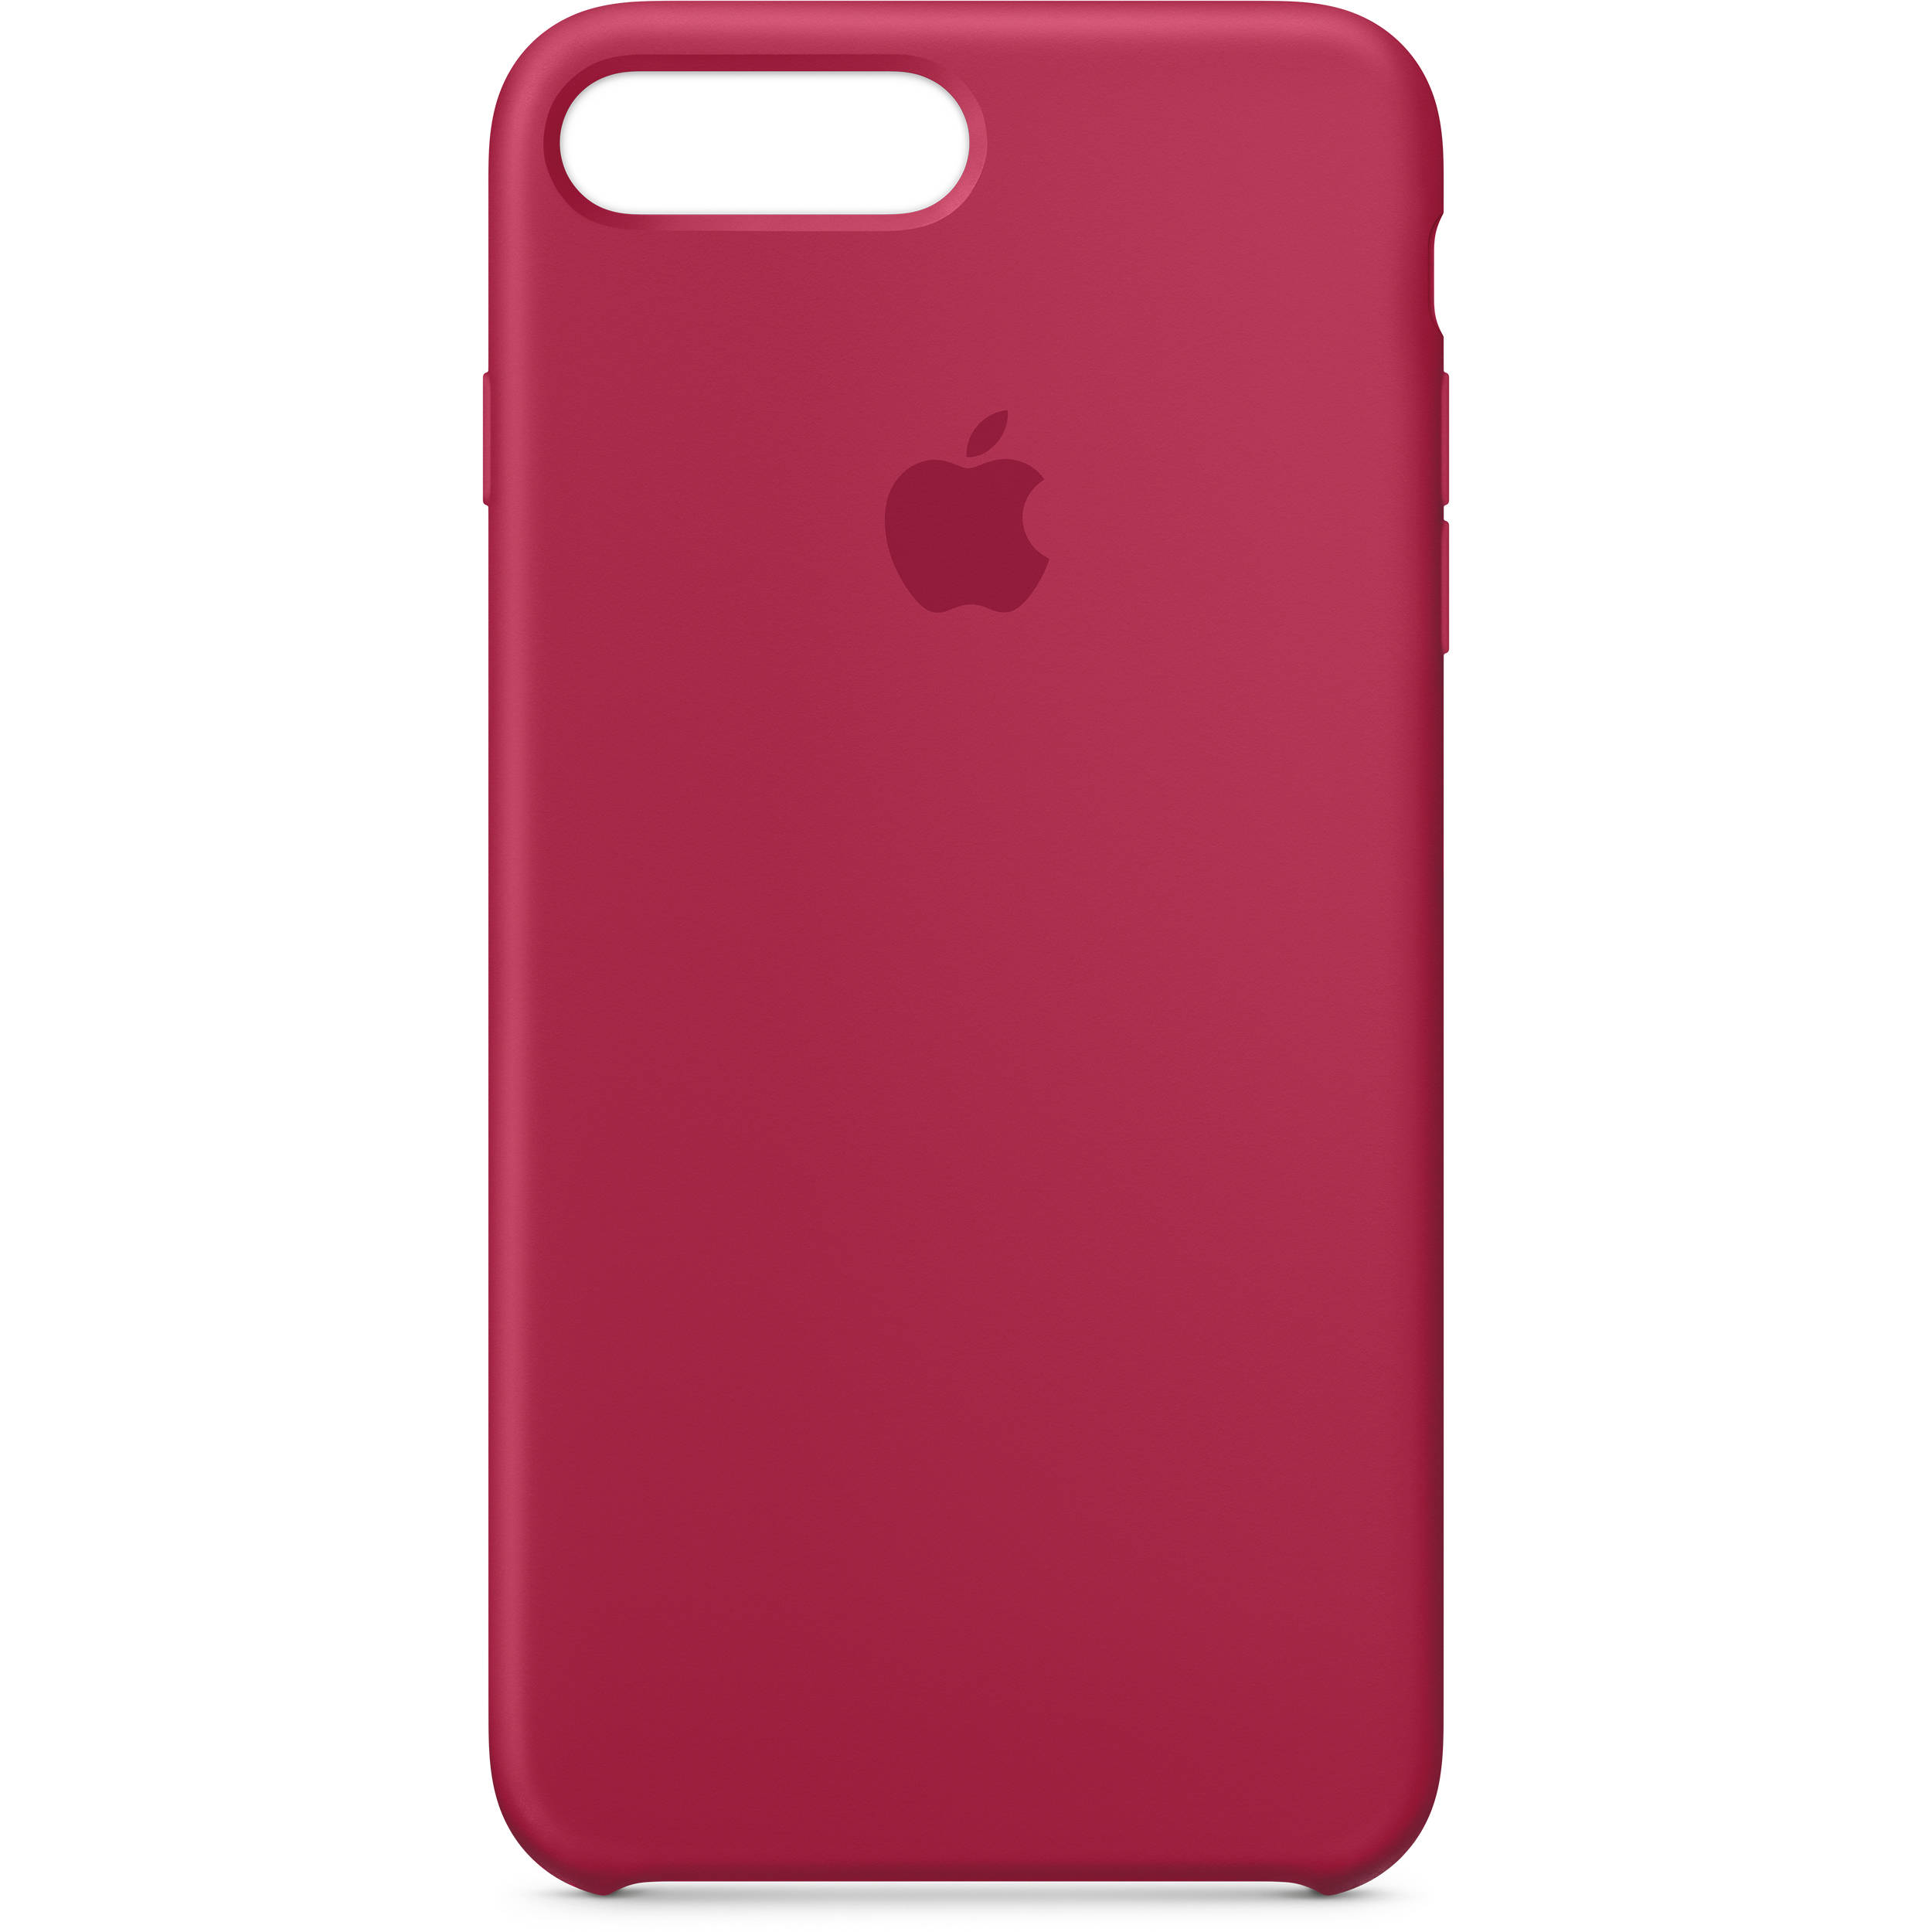 brand new 3b622 7af23 Apple iPhone 7 Plus/8 Plus Silicone Case (Rose Red)